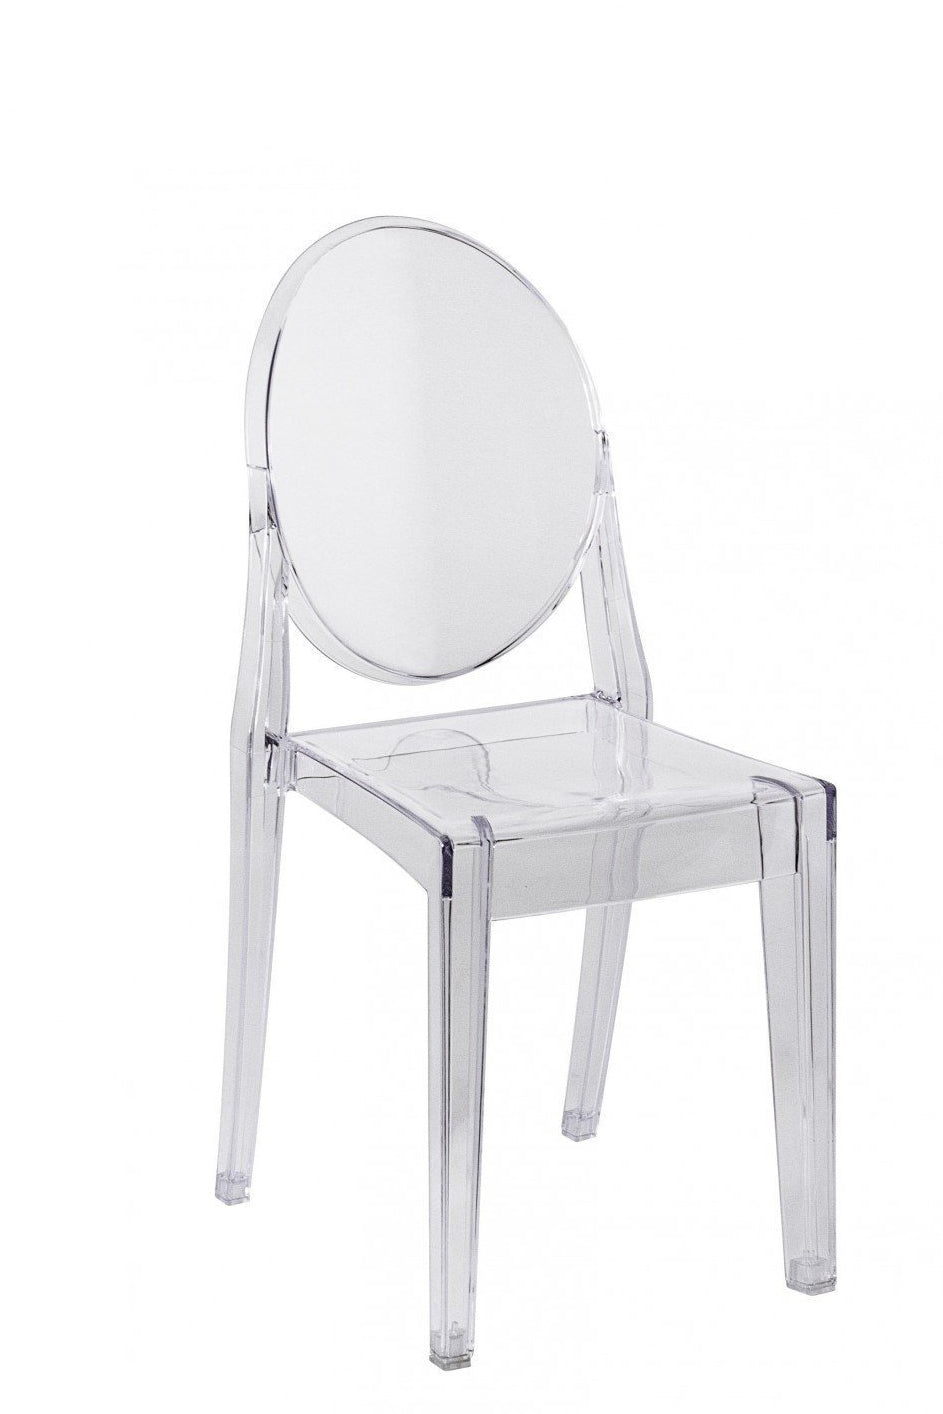 Clear Ghost Chairs for sale